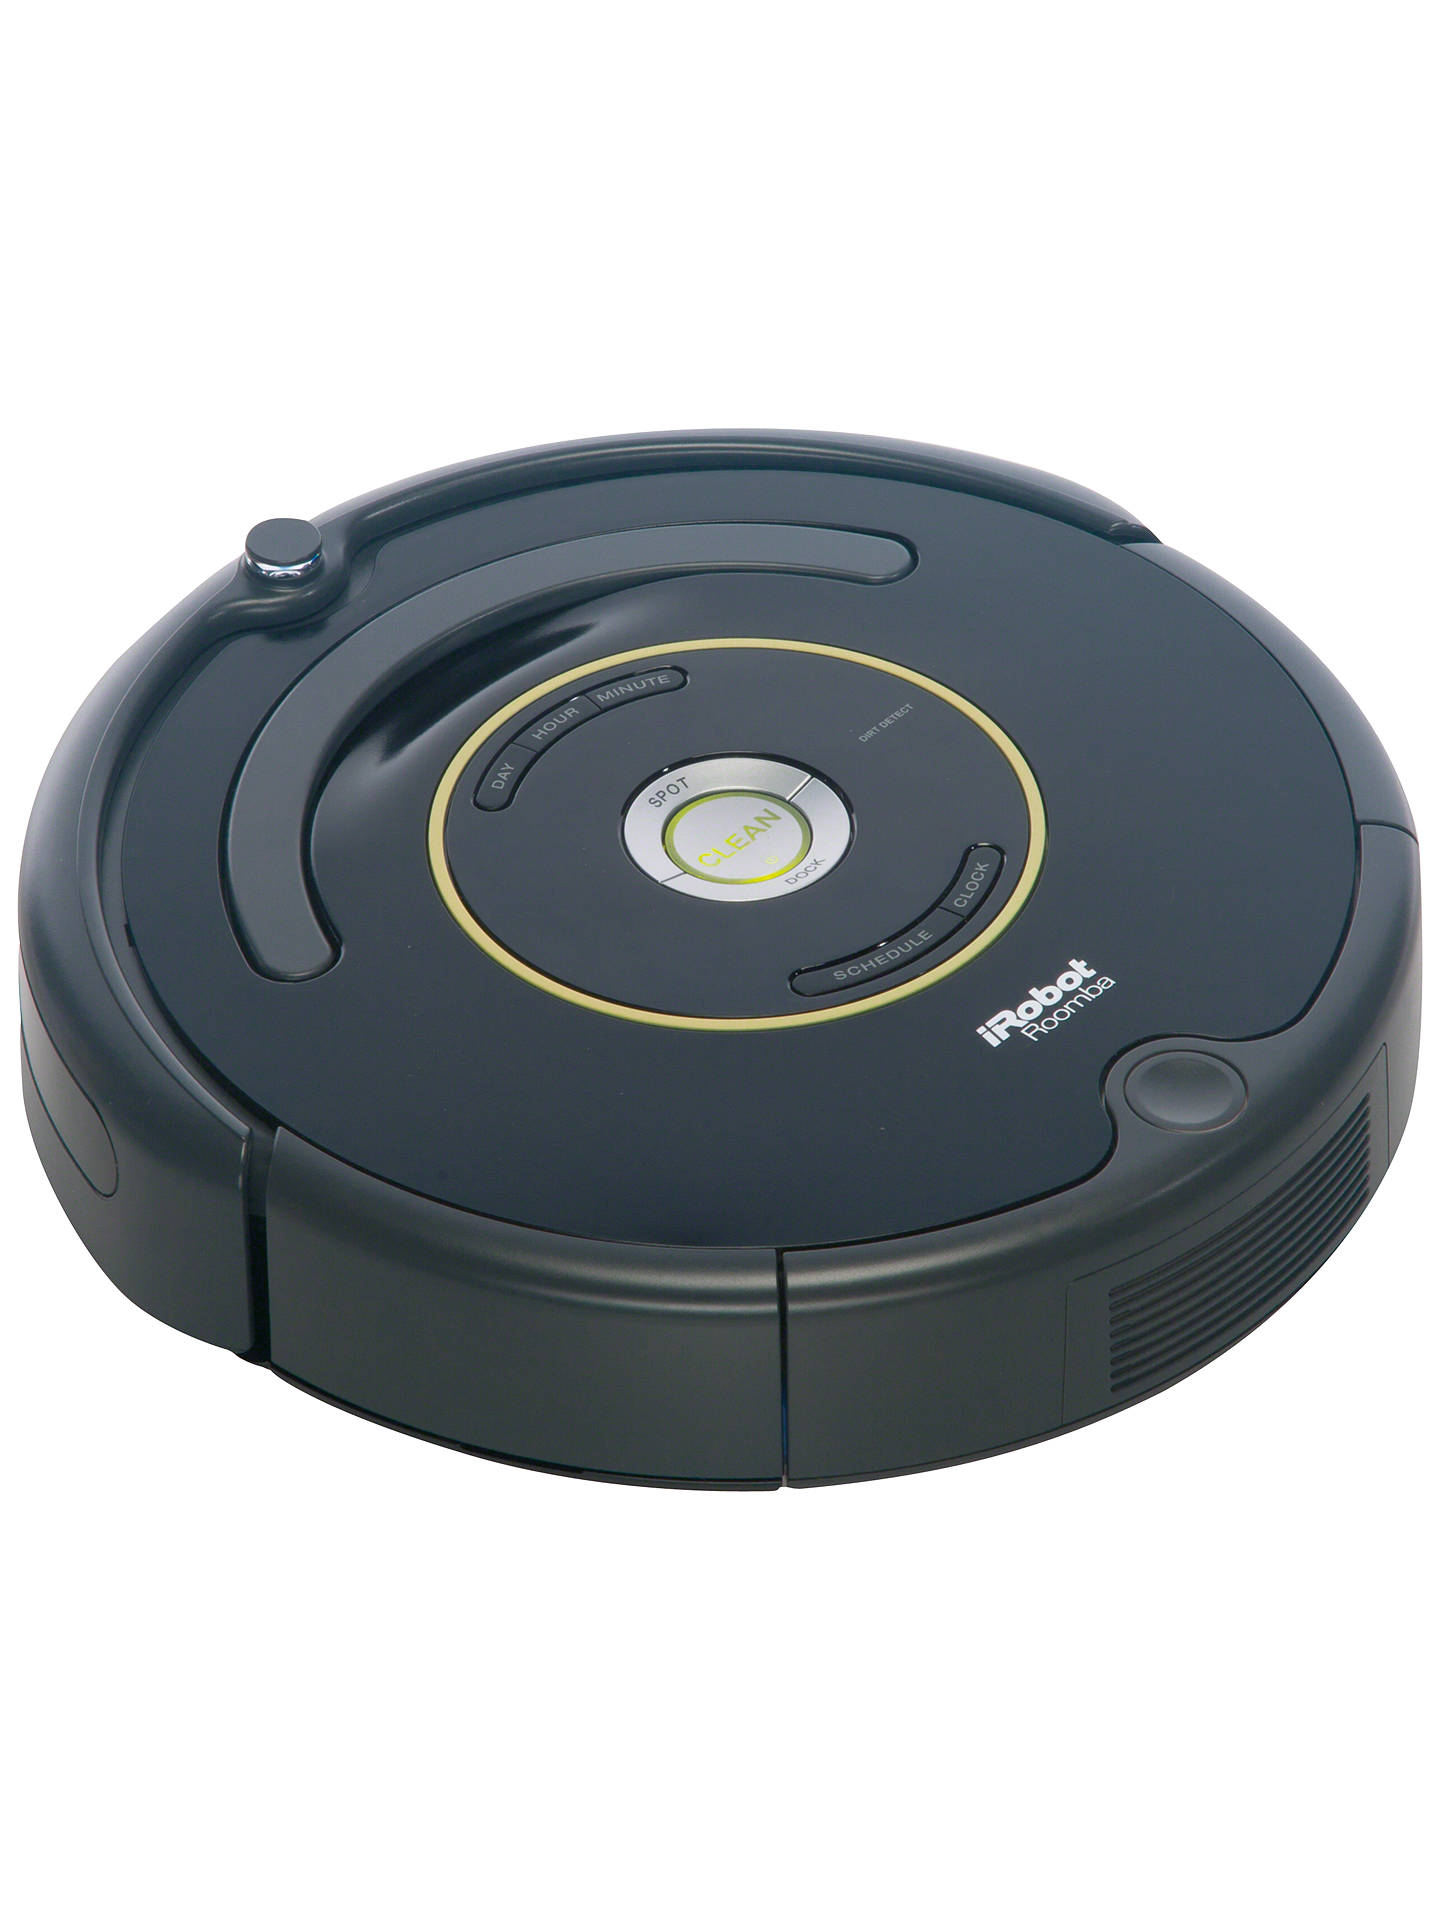 i-Robot Roomba 650 Vacuum Cleaner at John Lewis & Partners